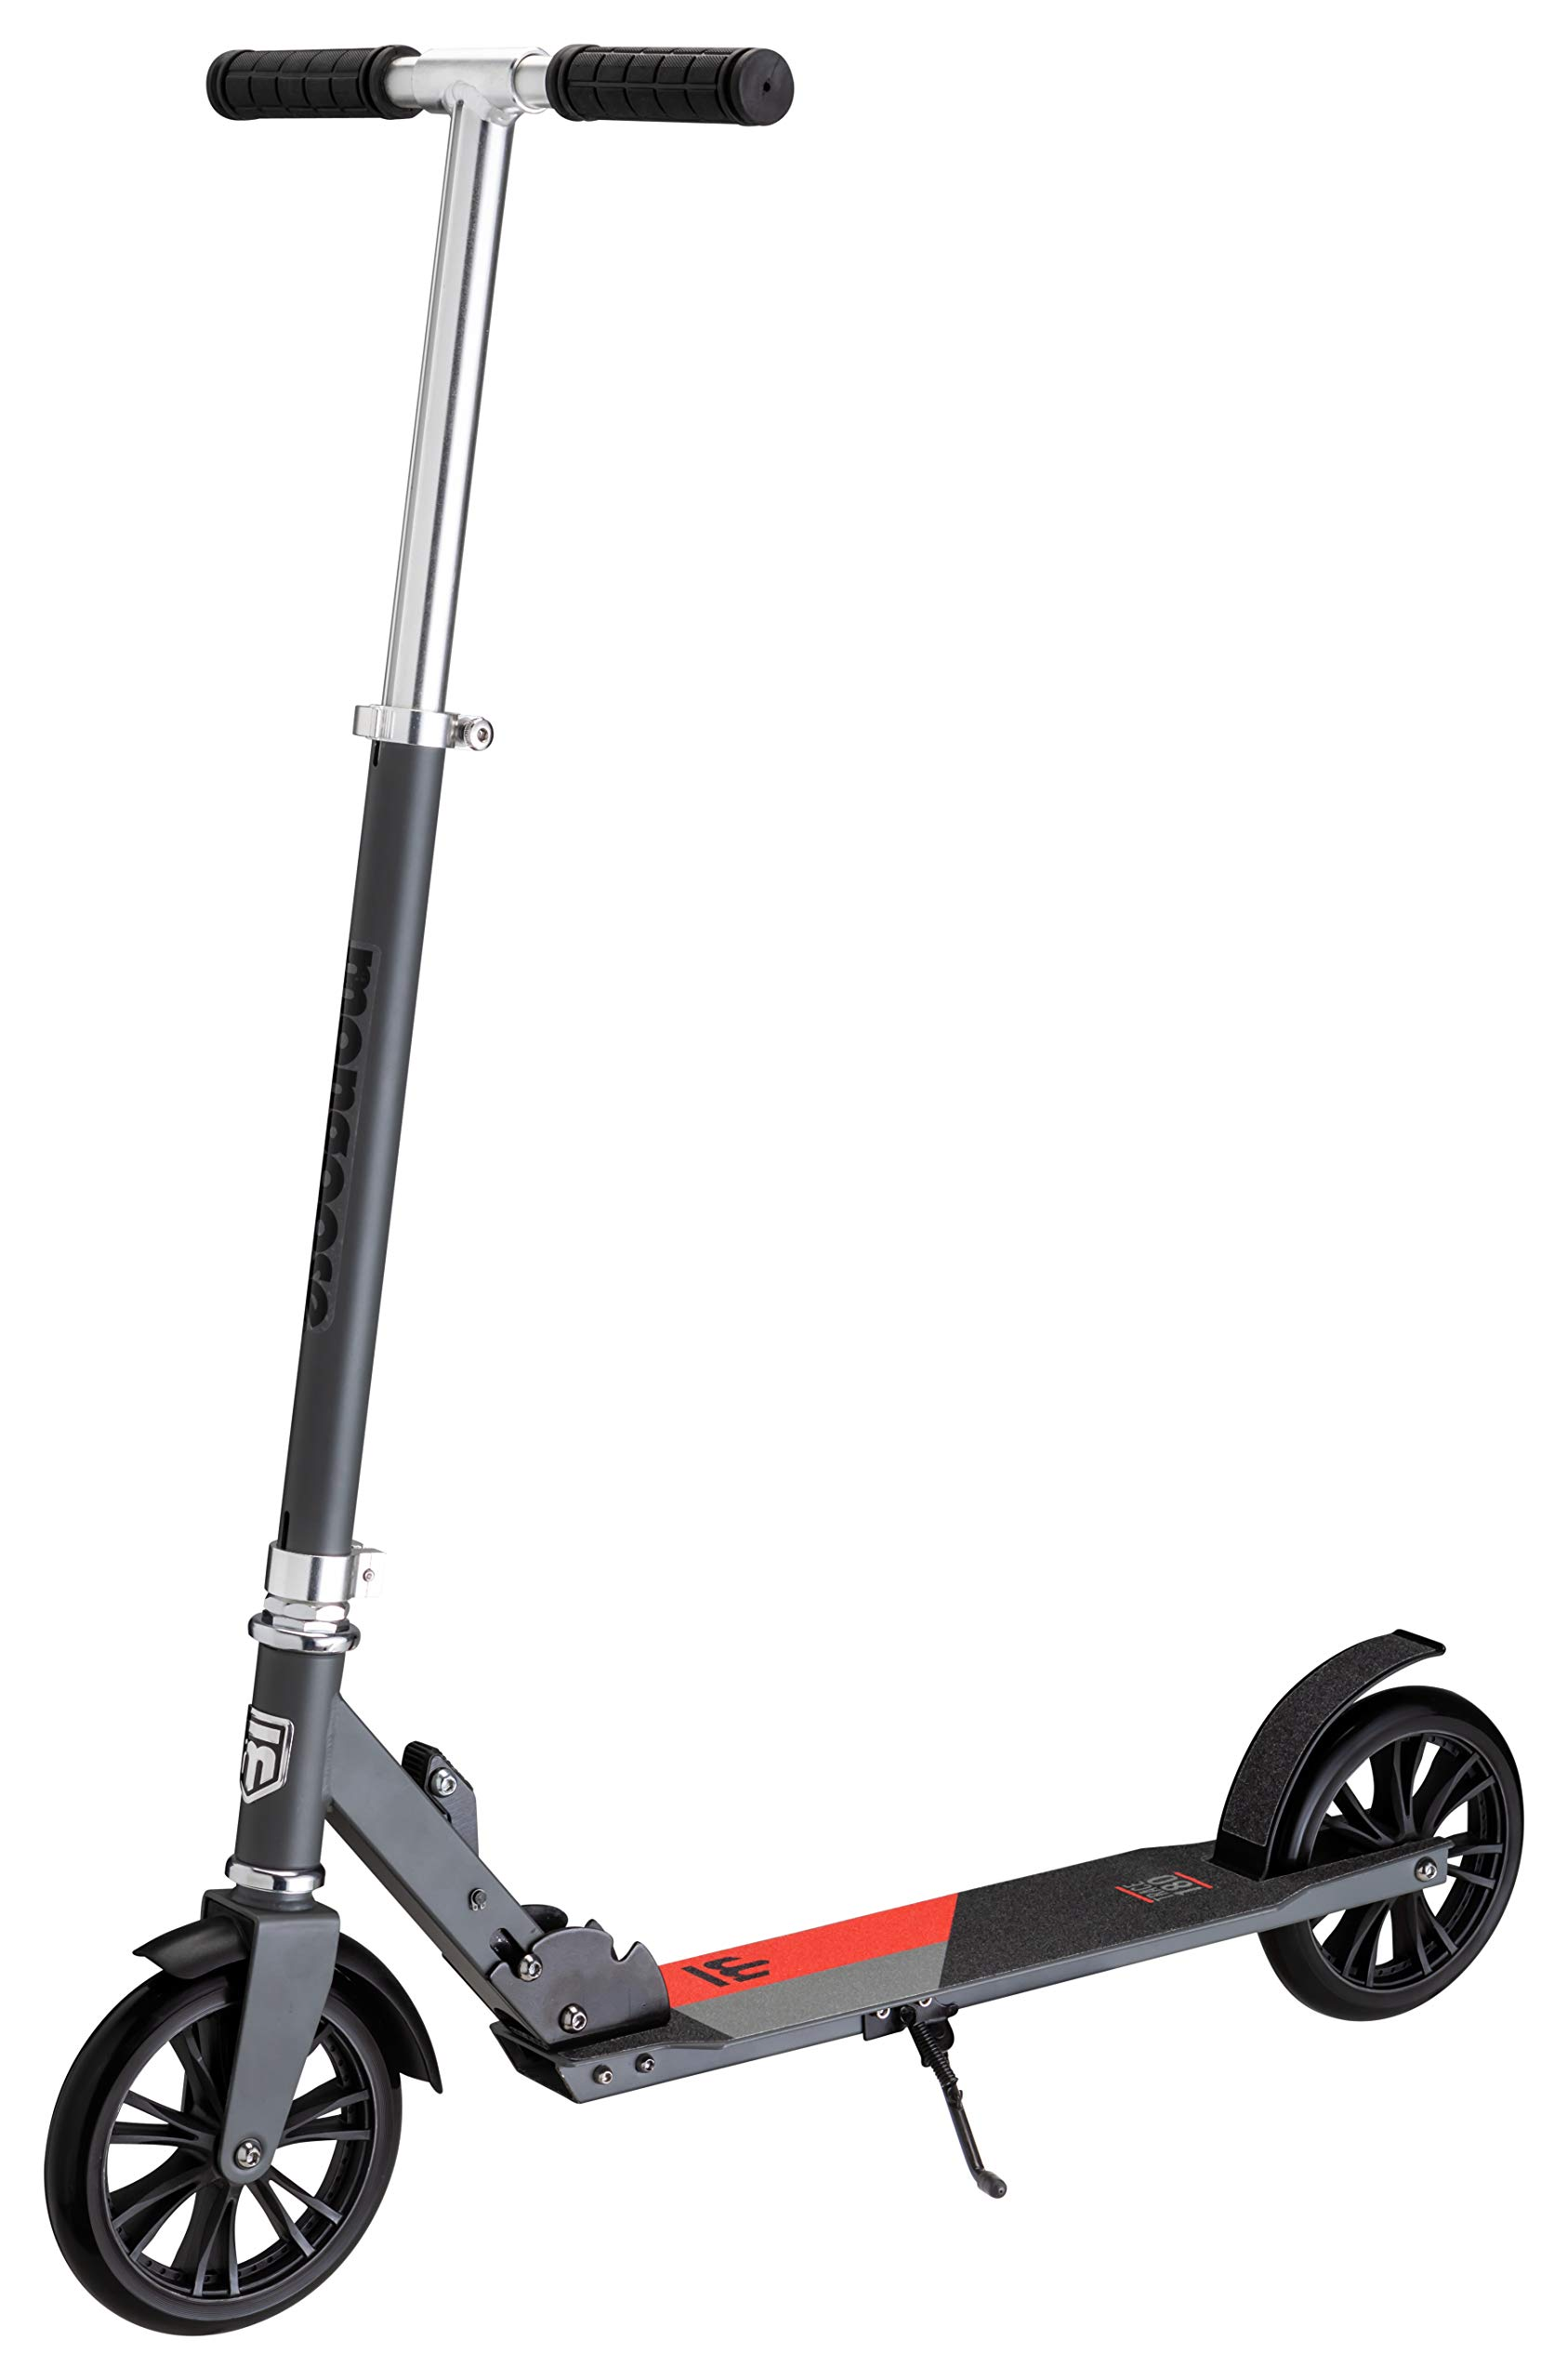 Mongoose Trace 180 Foldable Kick Scooter, Featuring Quick-Release Adjustable Height Handlebars with 180mm Wheels, Grey/Red